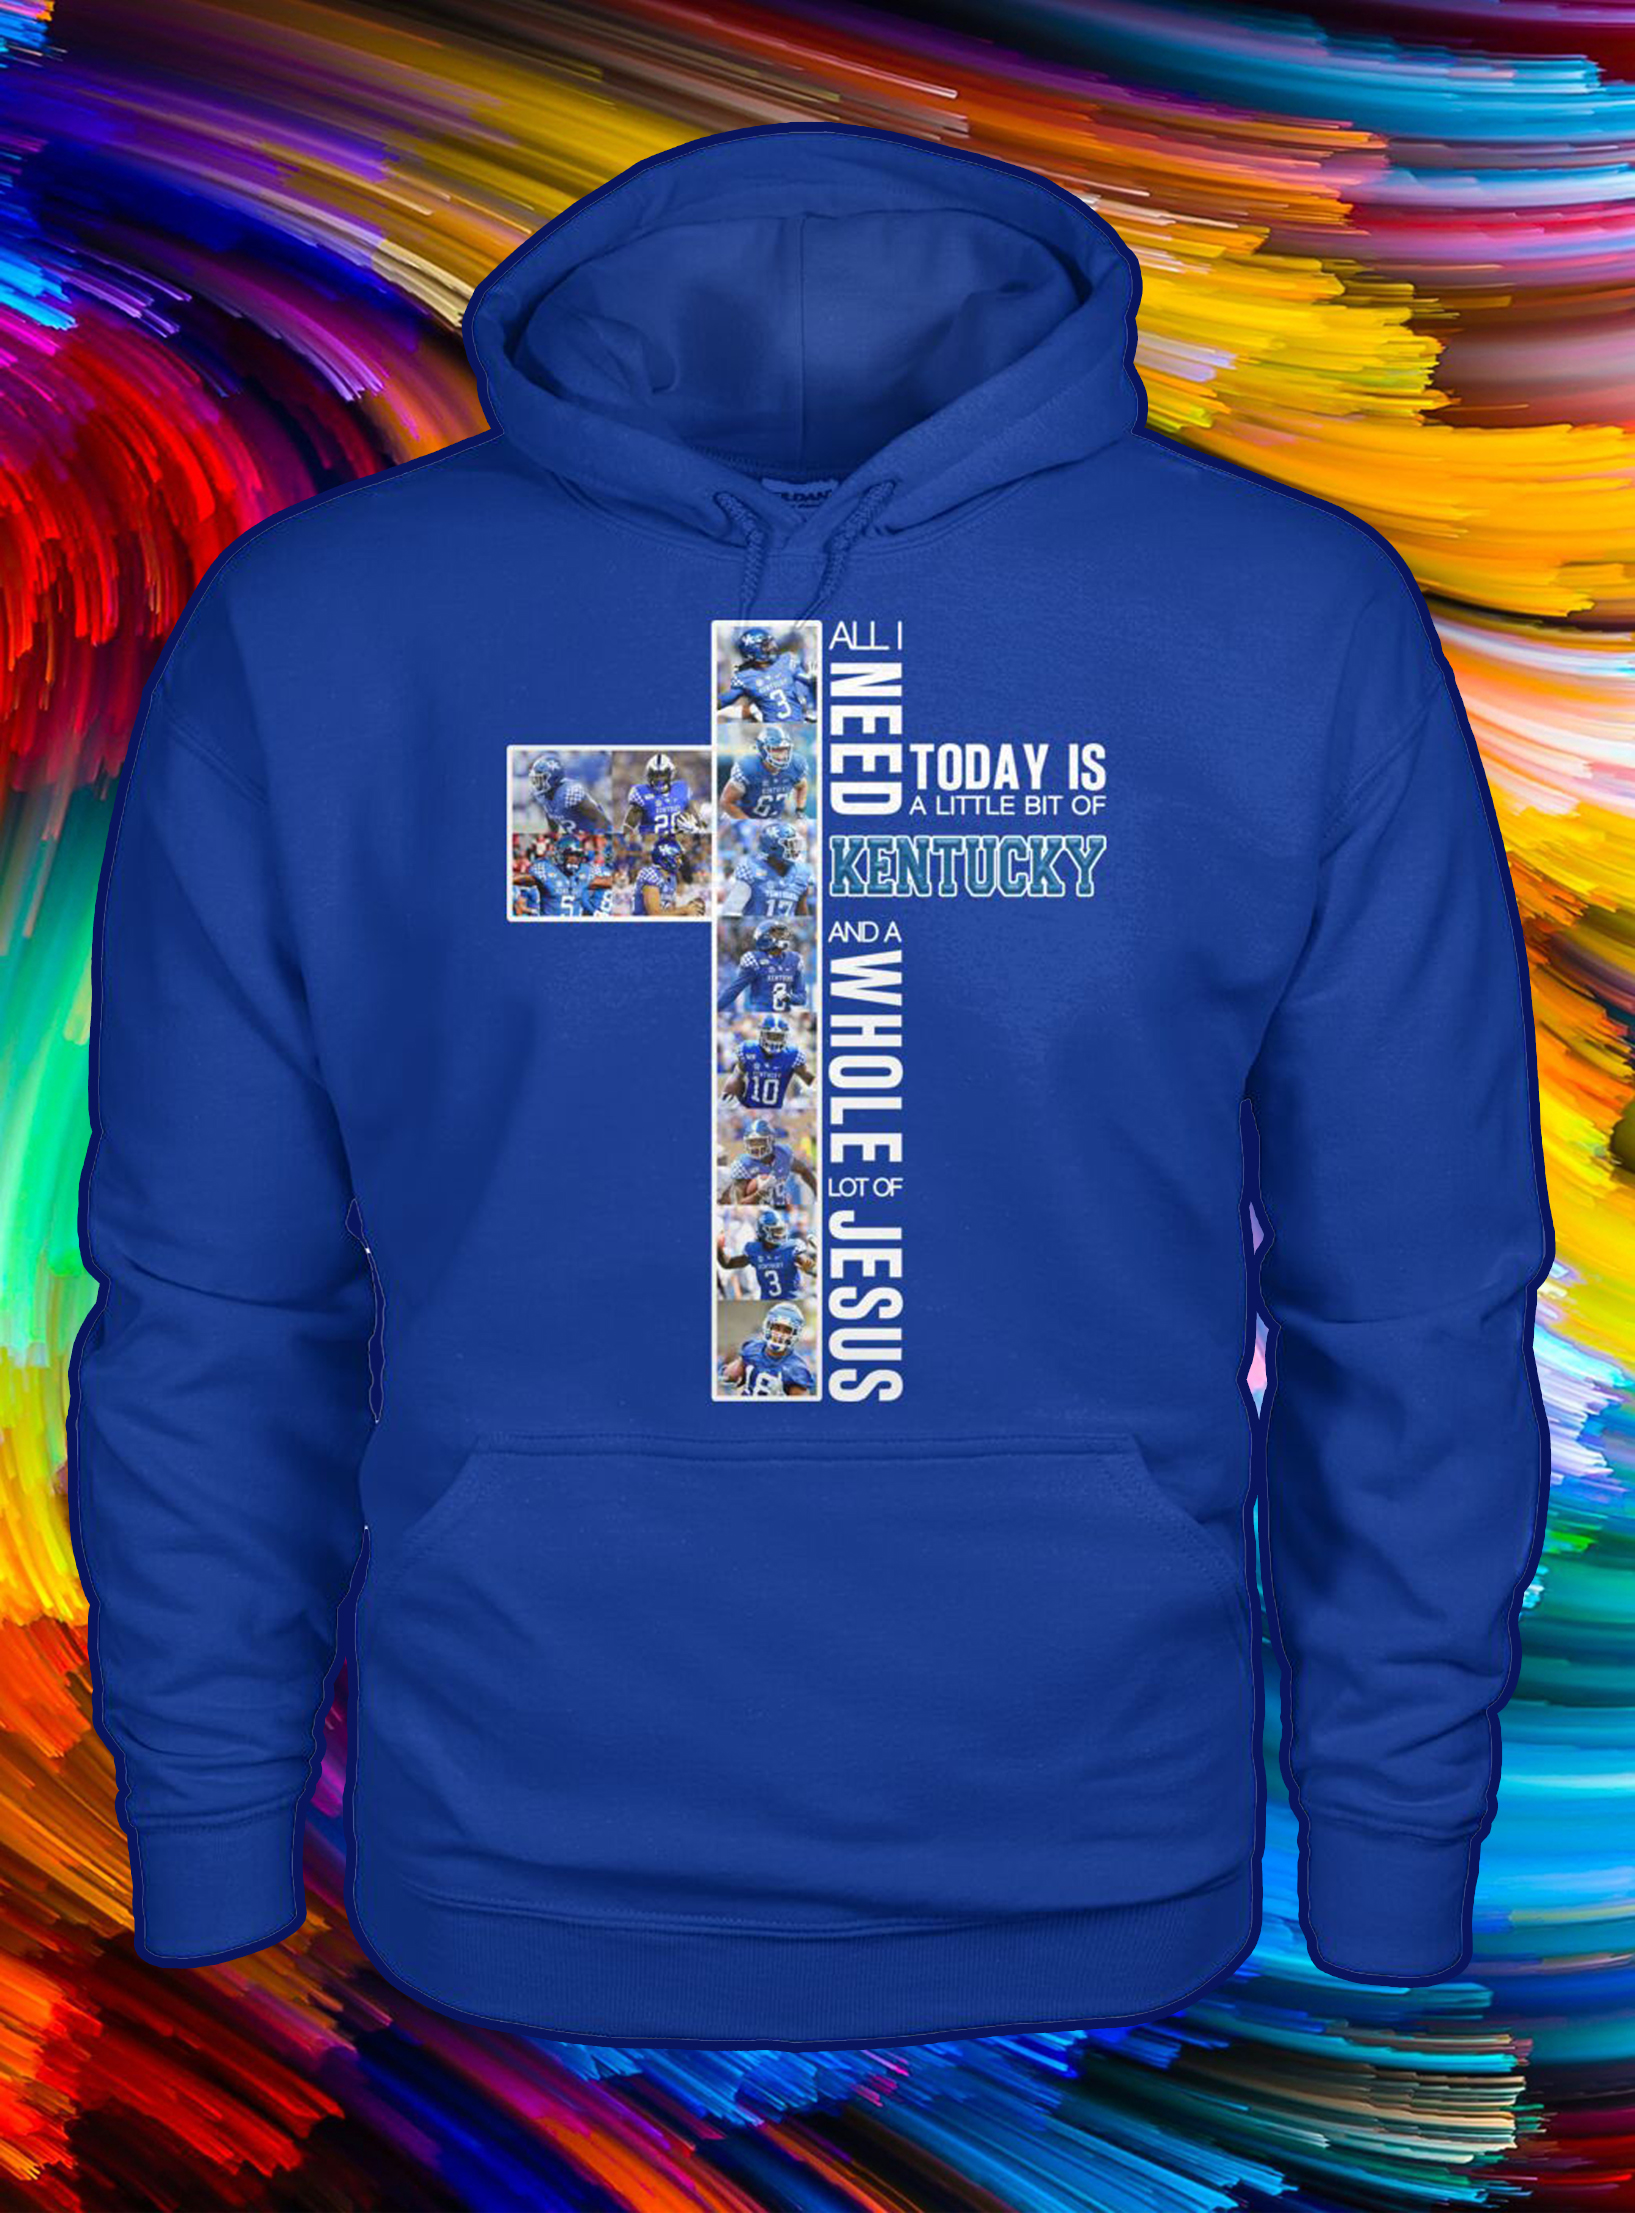 All i need today is a little bit of kentucky and a whole lot of jesus hoodie